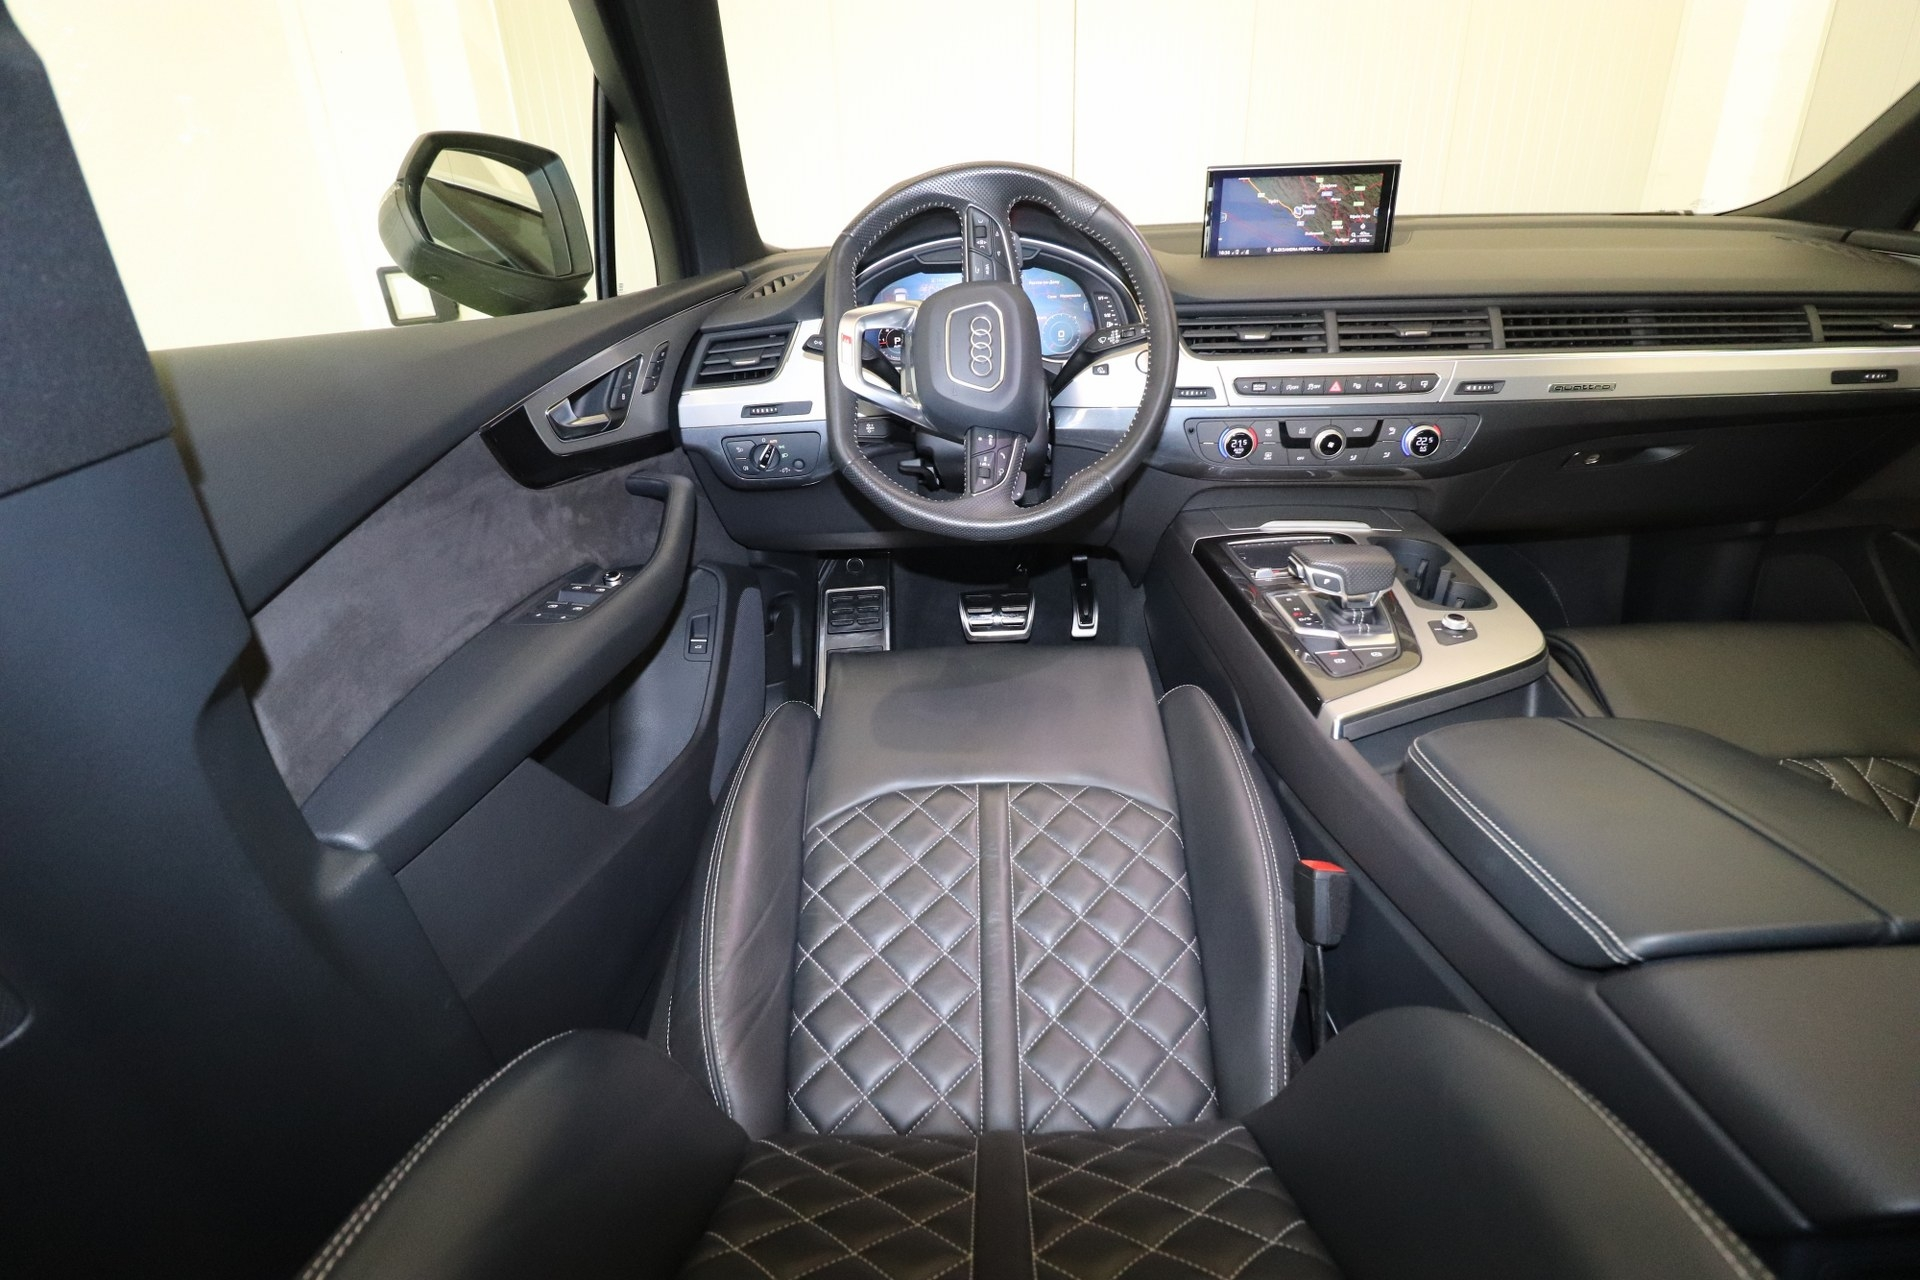 Audi Q7 3.0 TDI Quattro S-Tronic Sport Selection Edition Exclusive 3xS-Line Plus ACC+360°Kamera Virtual Cockpit Max-VOLL 272 KS New Modell 2018